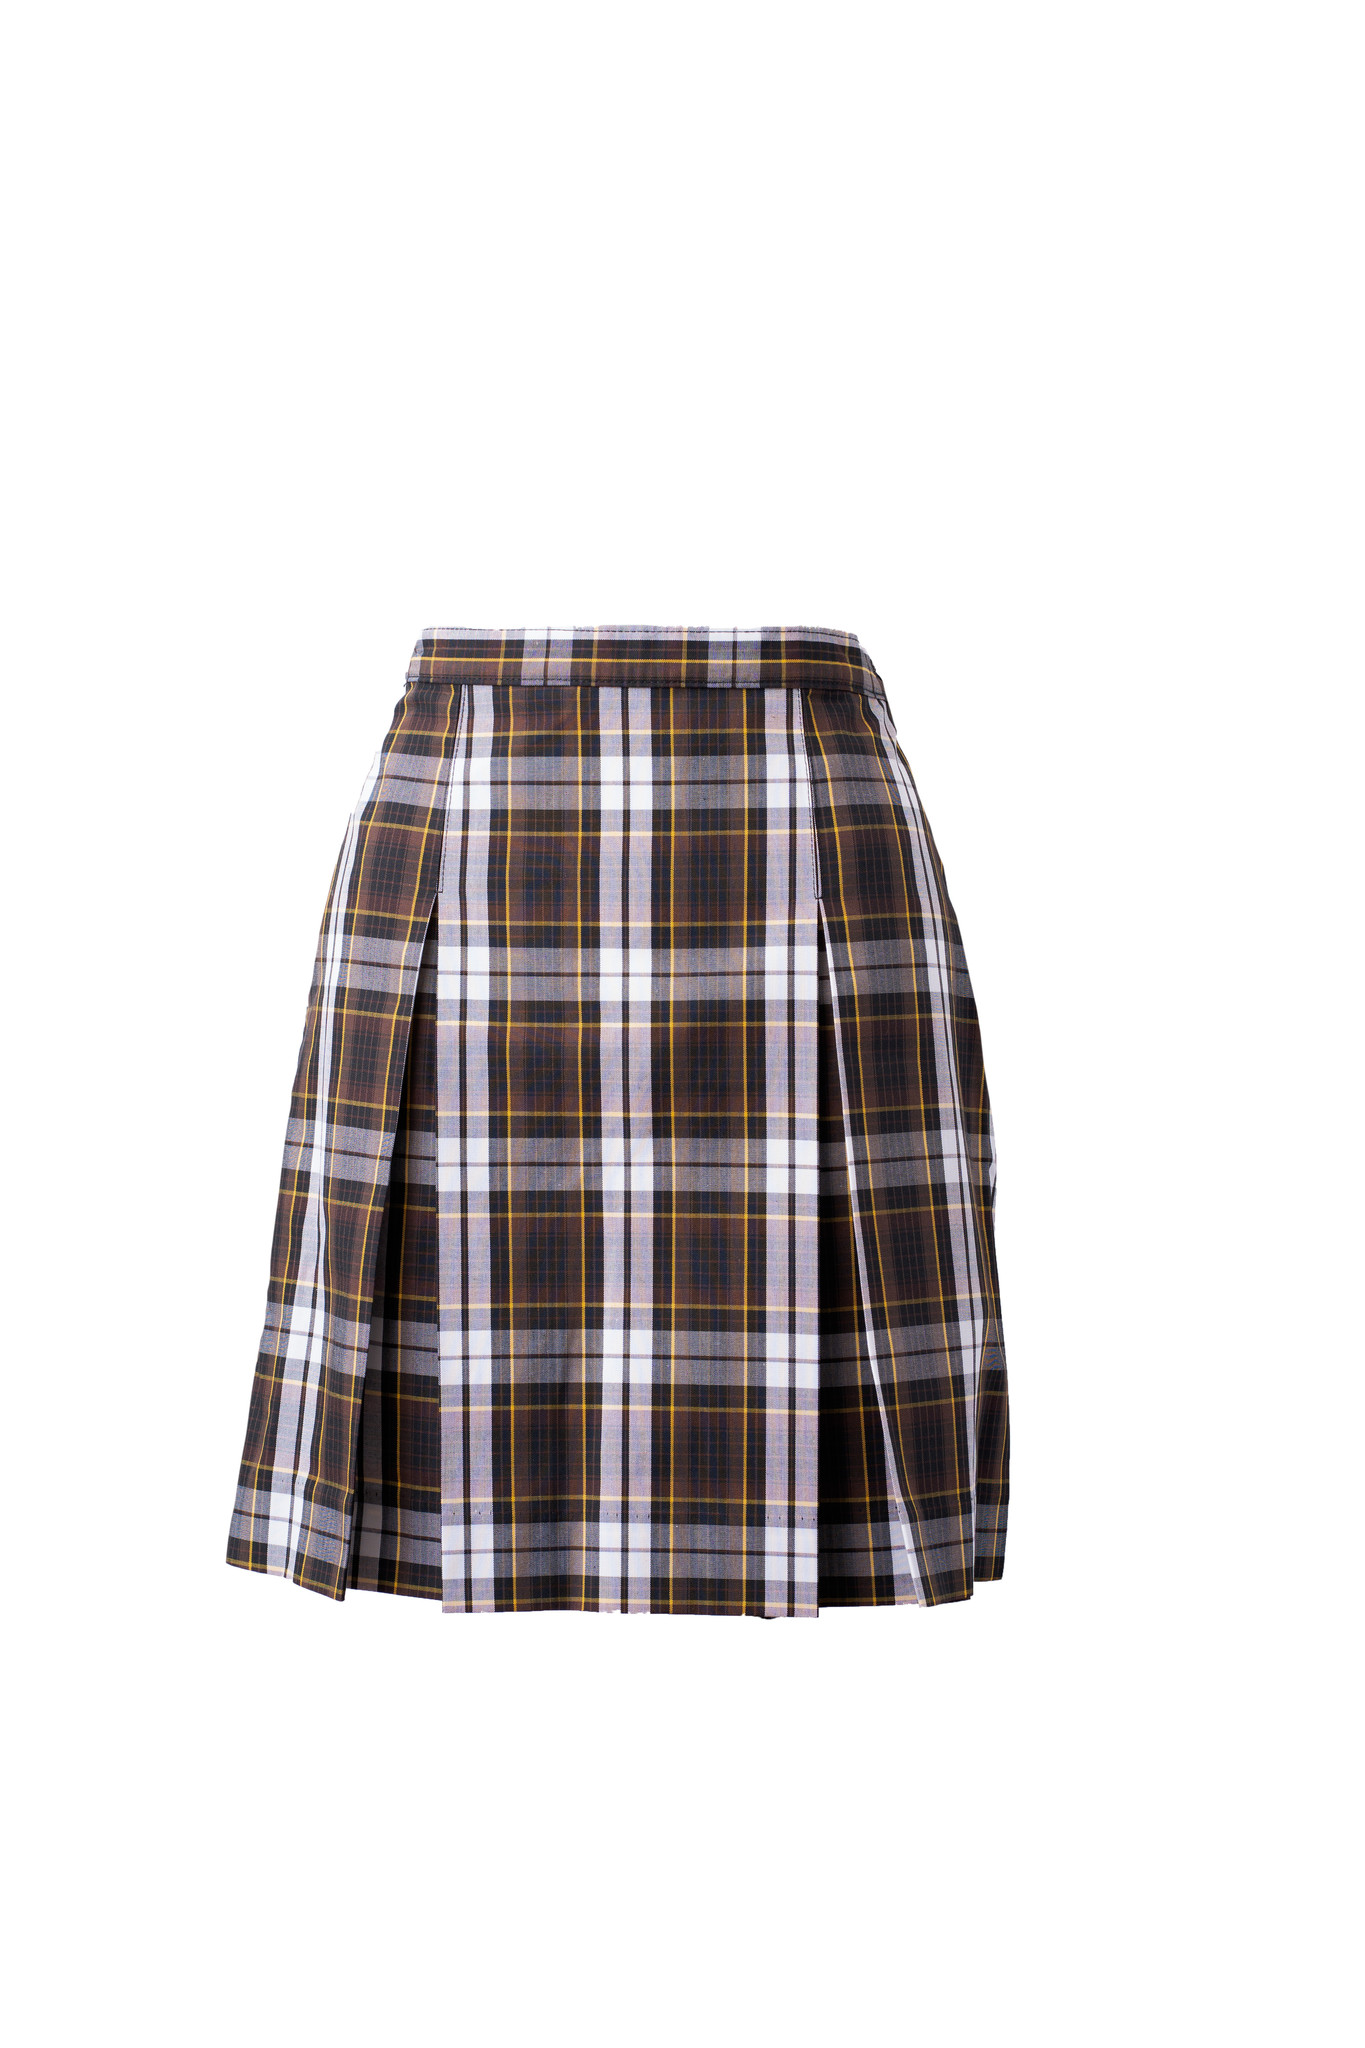 Assumption Catholic School Skirt